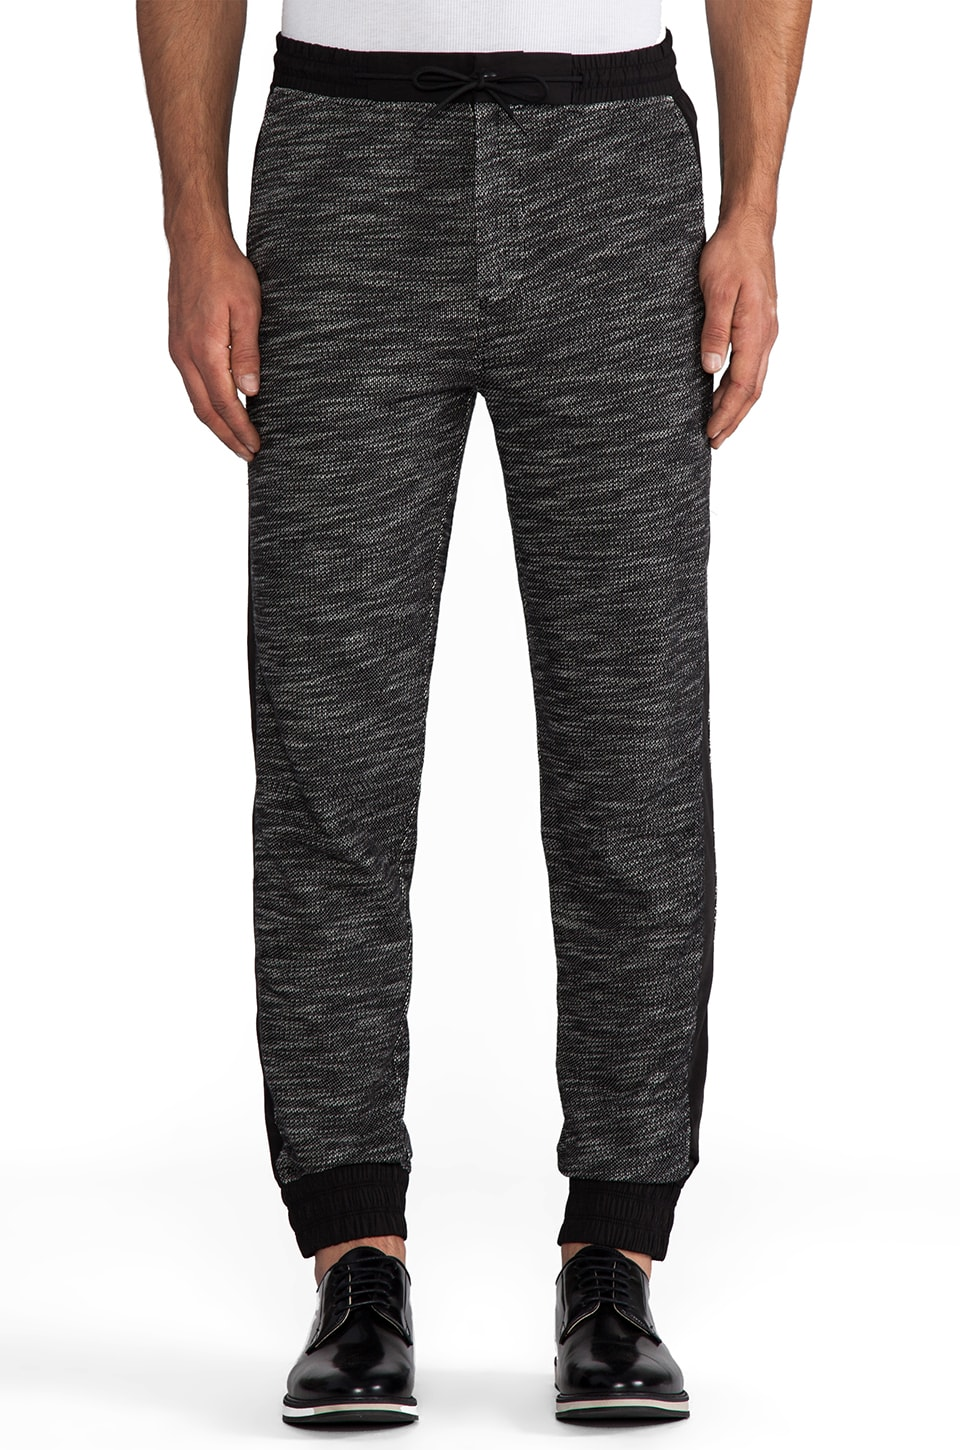 T by Alexander Wang French Terry with Matte Nylon Sweatpants in Black/White